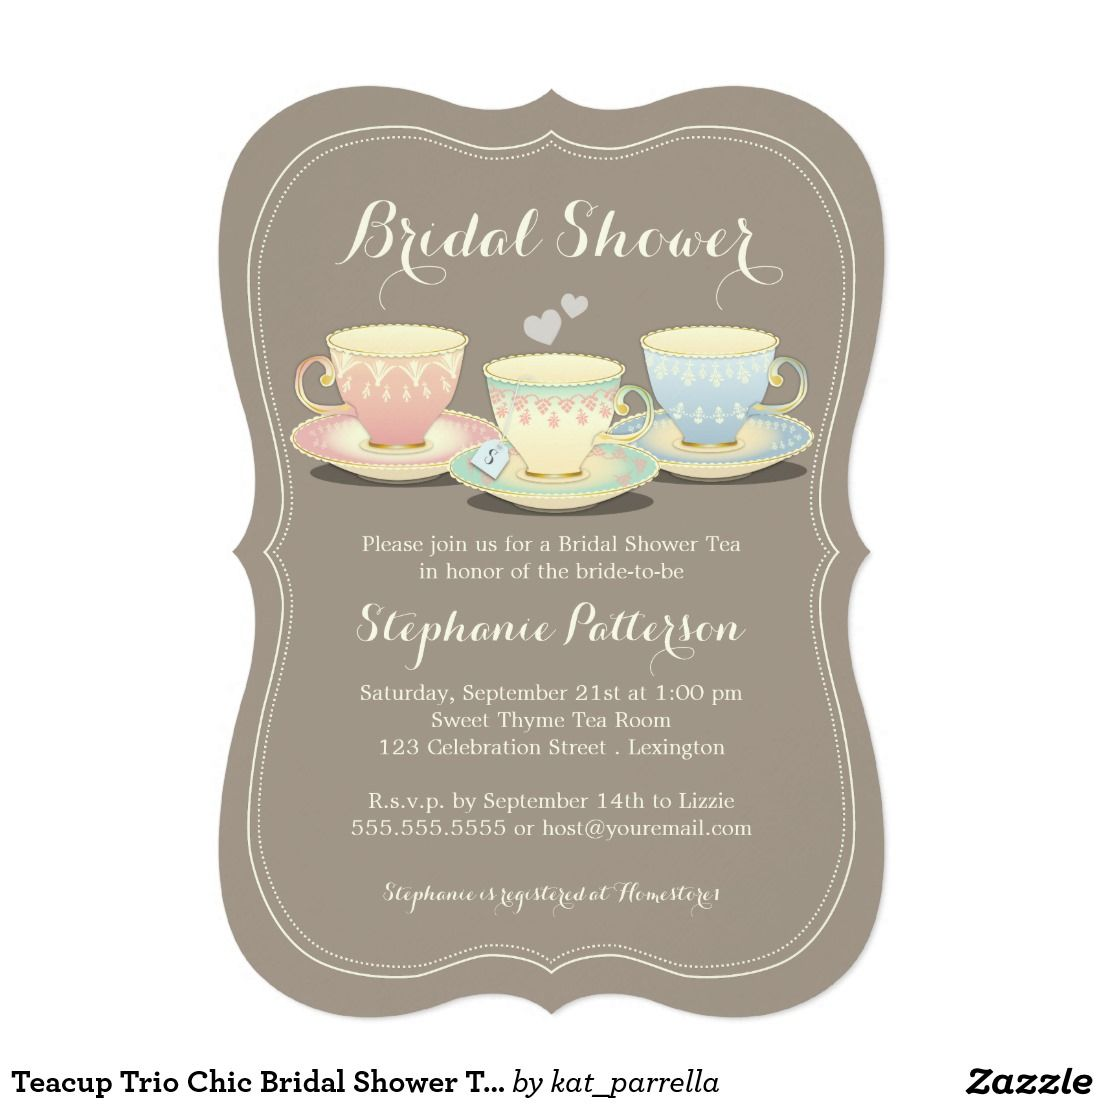 Teacup Trio Chic Bridal Shower Tea Party Invitation